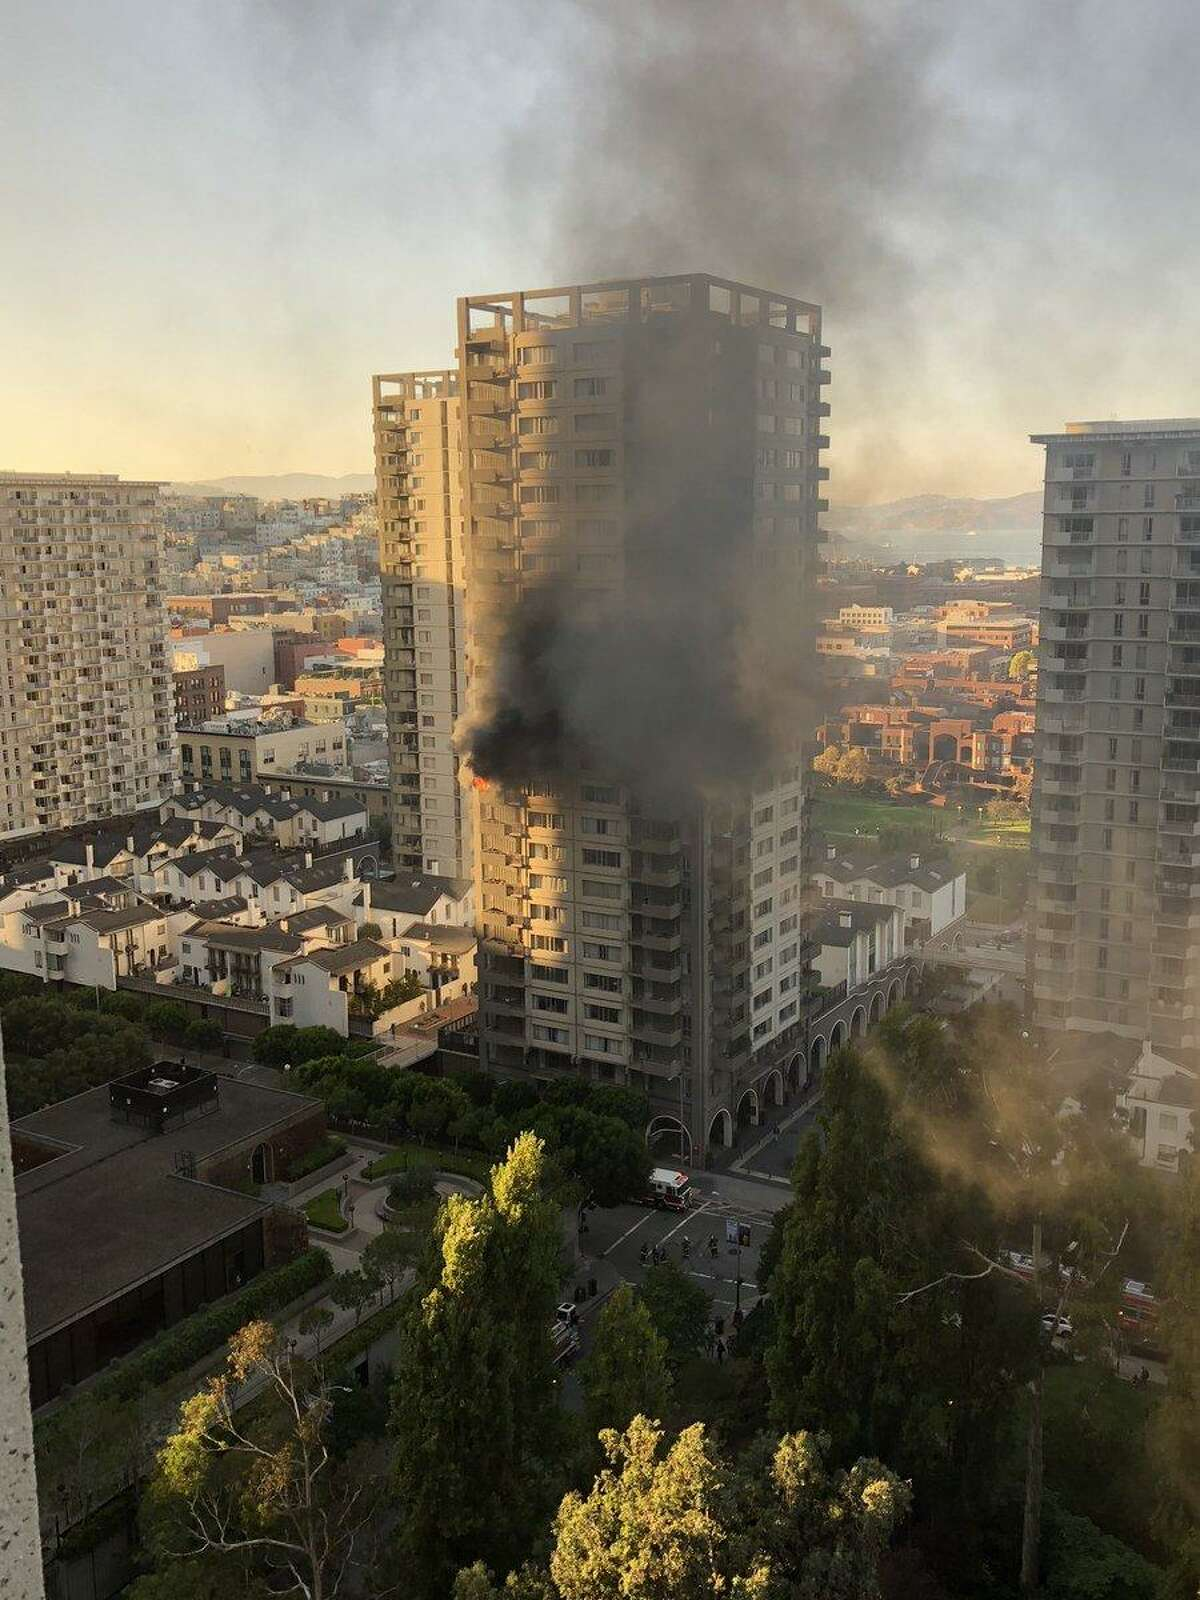 A fire is seen burning in a San Francisco residential high-rise in the Financial District at 405 Davis Street near Washington Street in a building of apartments and townhouses.